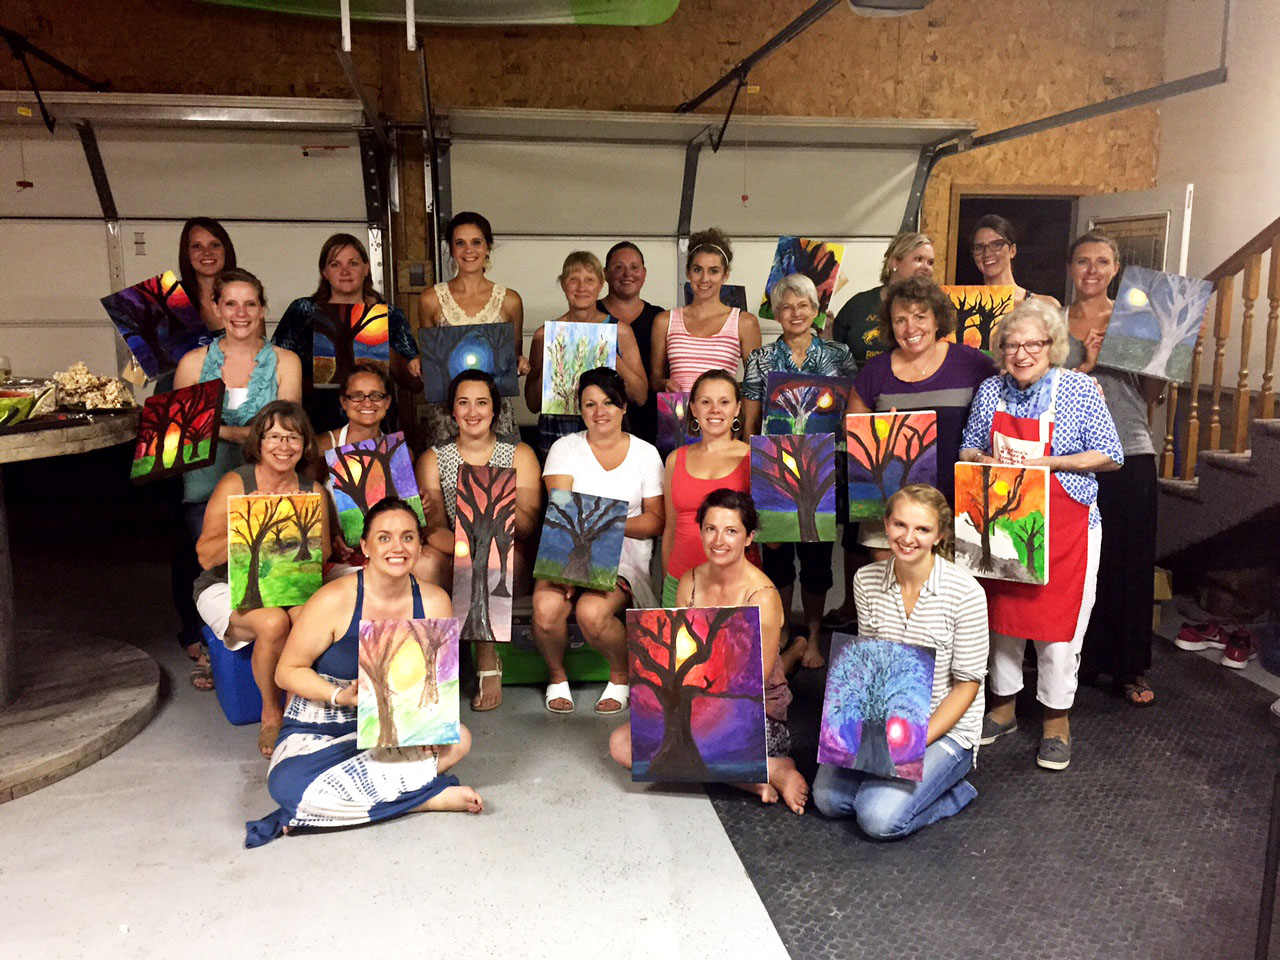 JEBERLECO sponsors a variety of arts and culture activities in and around Ellendale including painting  classes.